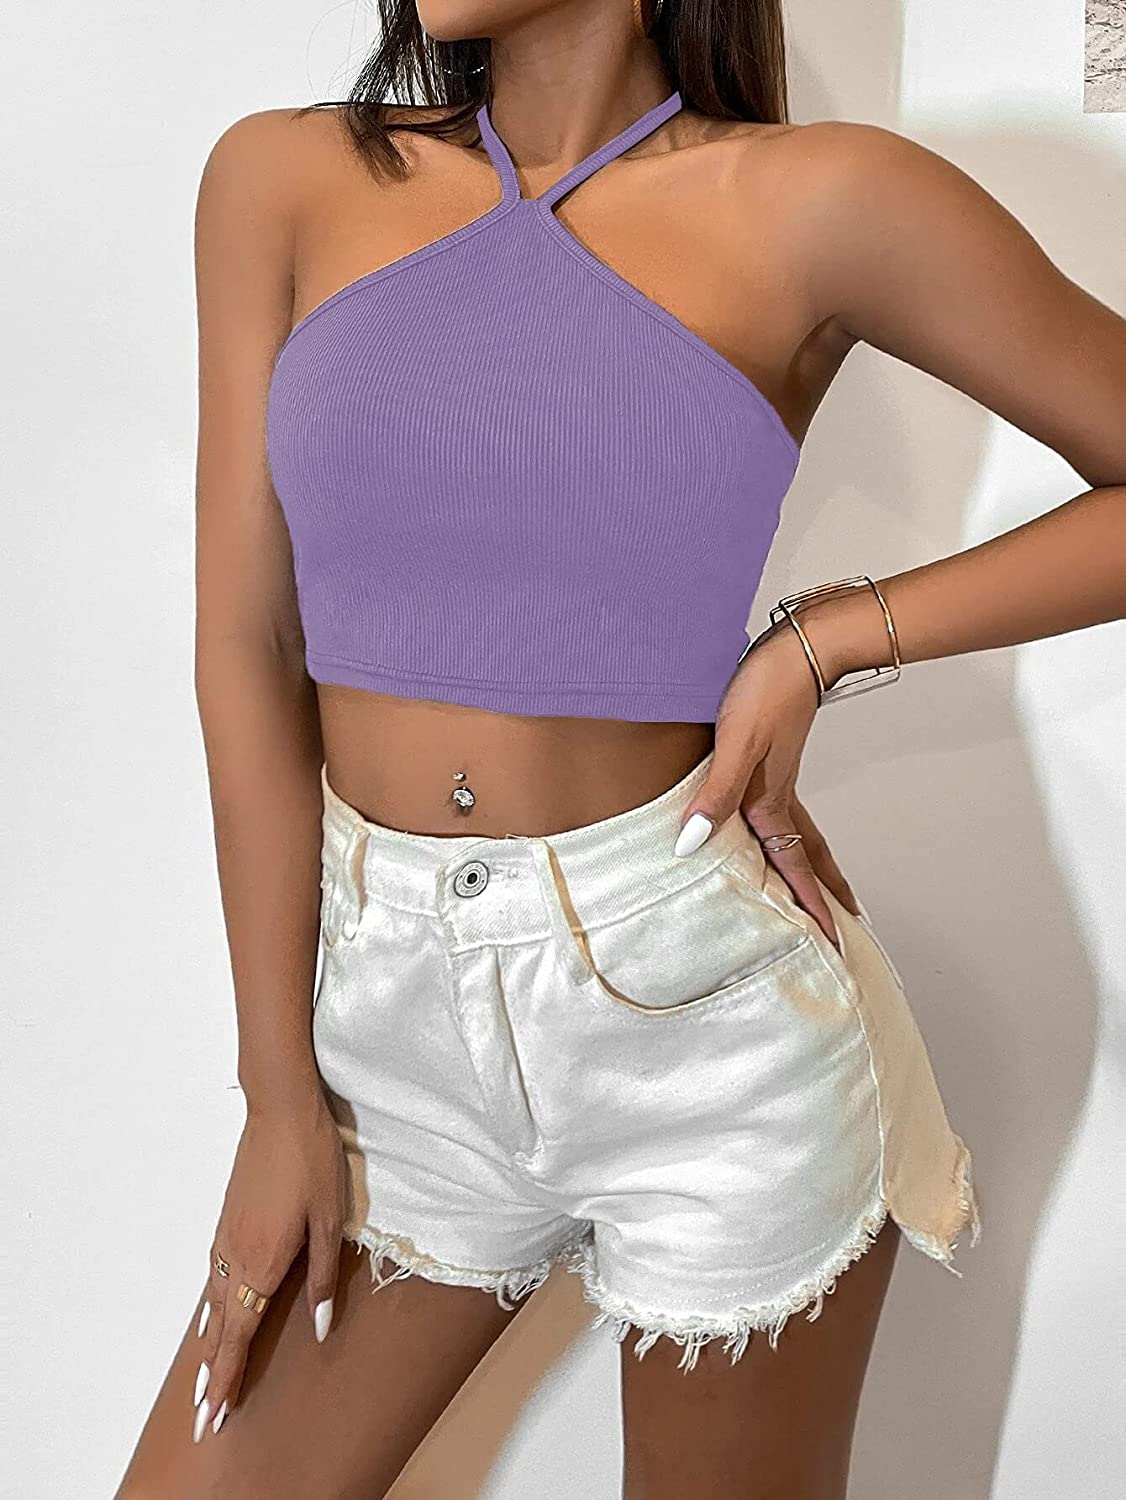 Milumia Women's Backless Halter Cami Crop Top Sleeveless Tie Back Camisole